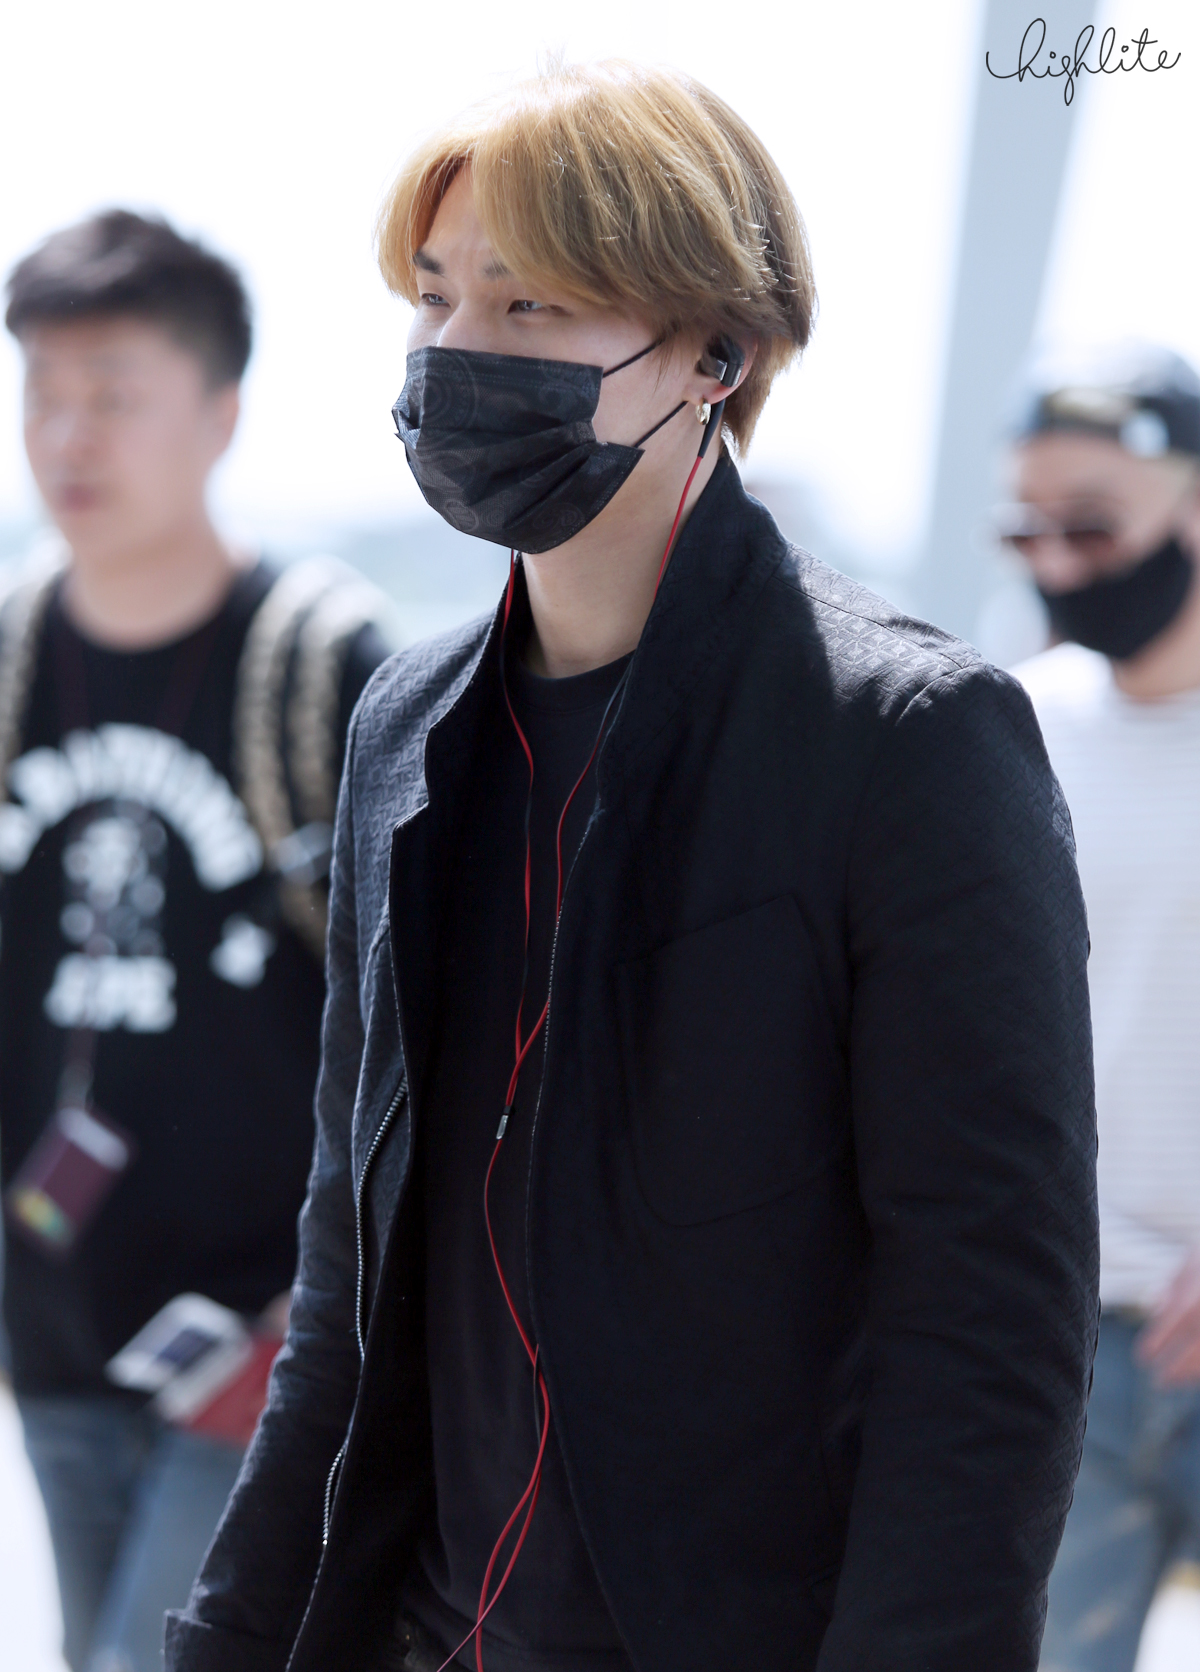 HQs BIGBANG Incheon to Guangzhou 2015-05-29 highlight 002.jpg